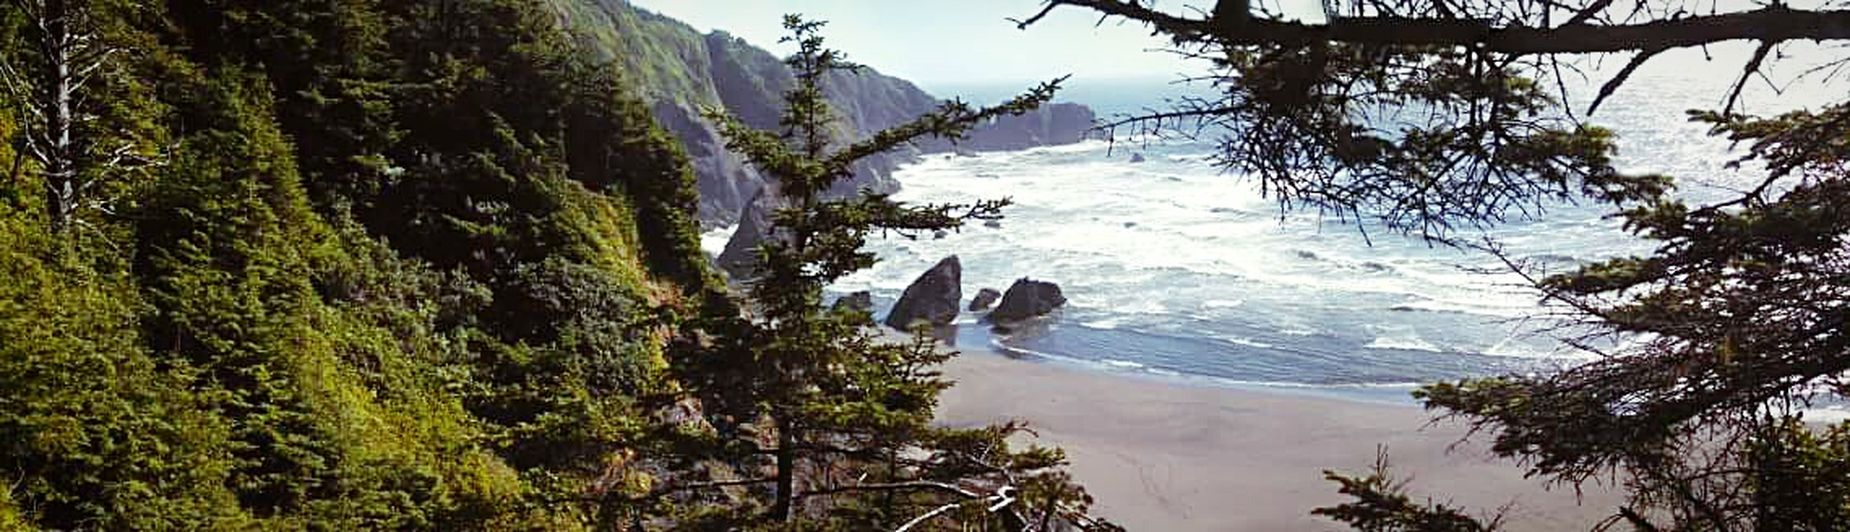 Travel Photography Pacific Northwest  Nature_collection Califonia Beach Summer California Coast California Beachside Found On The Roll Beach Afternoon Sky Pacific Coast Roadtrip